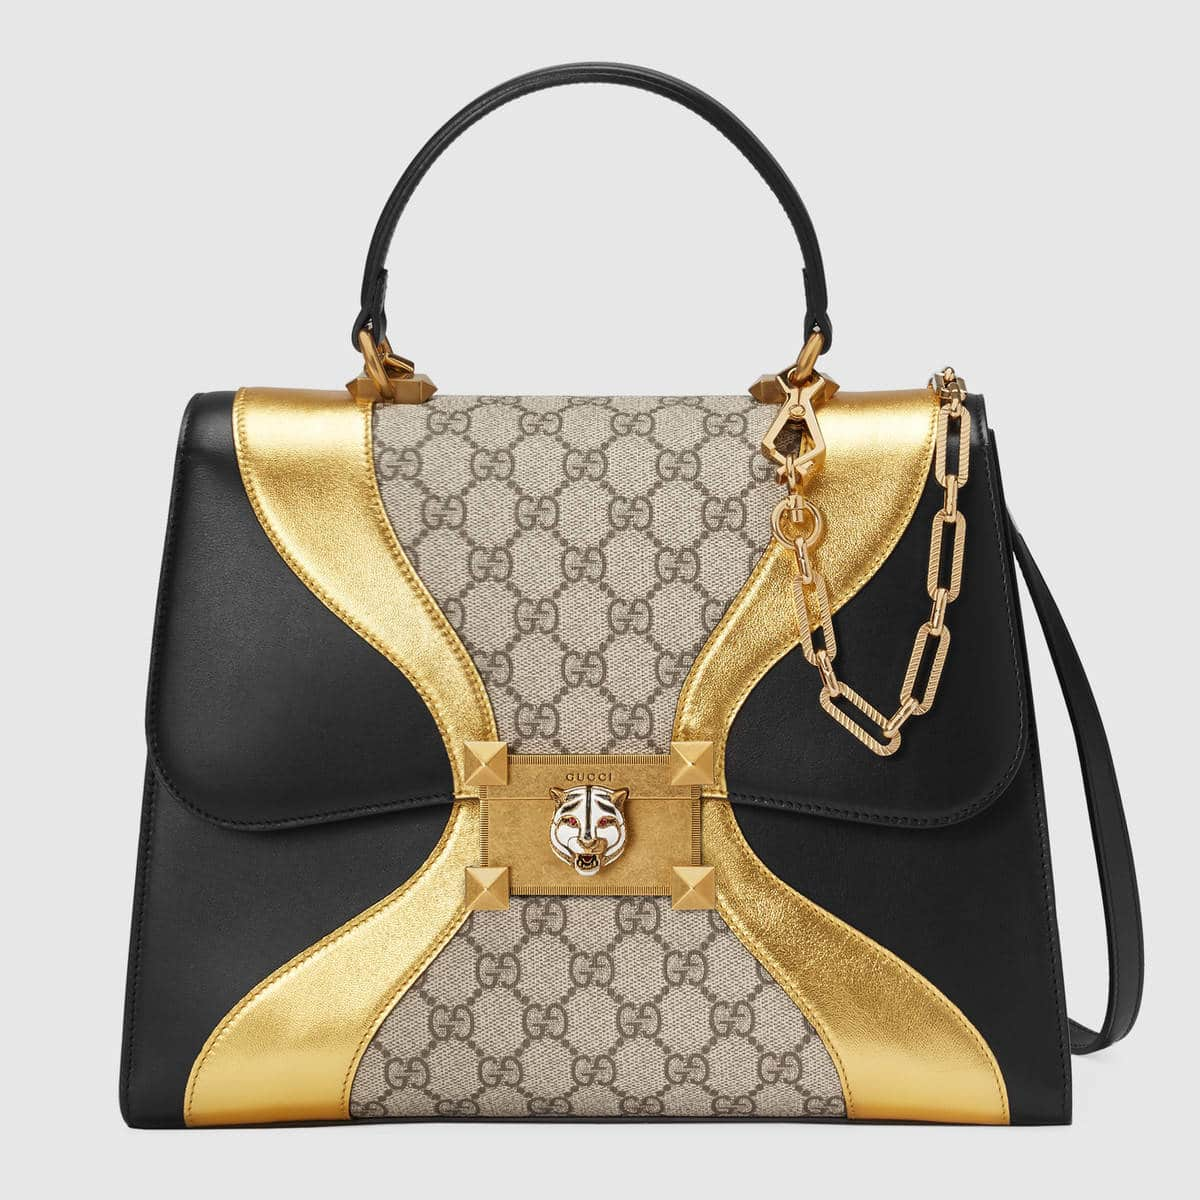 Gucci bags 2018 prices